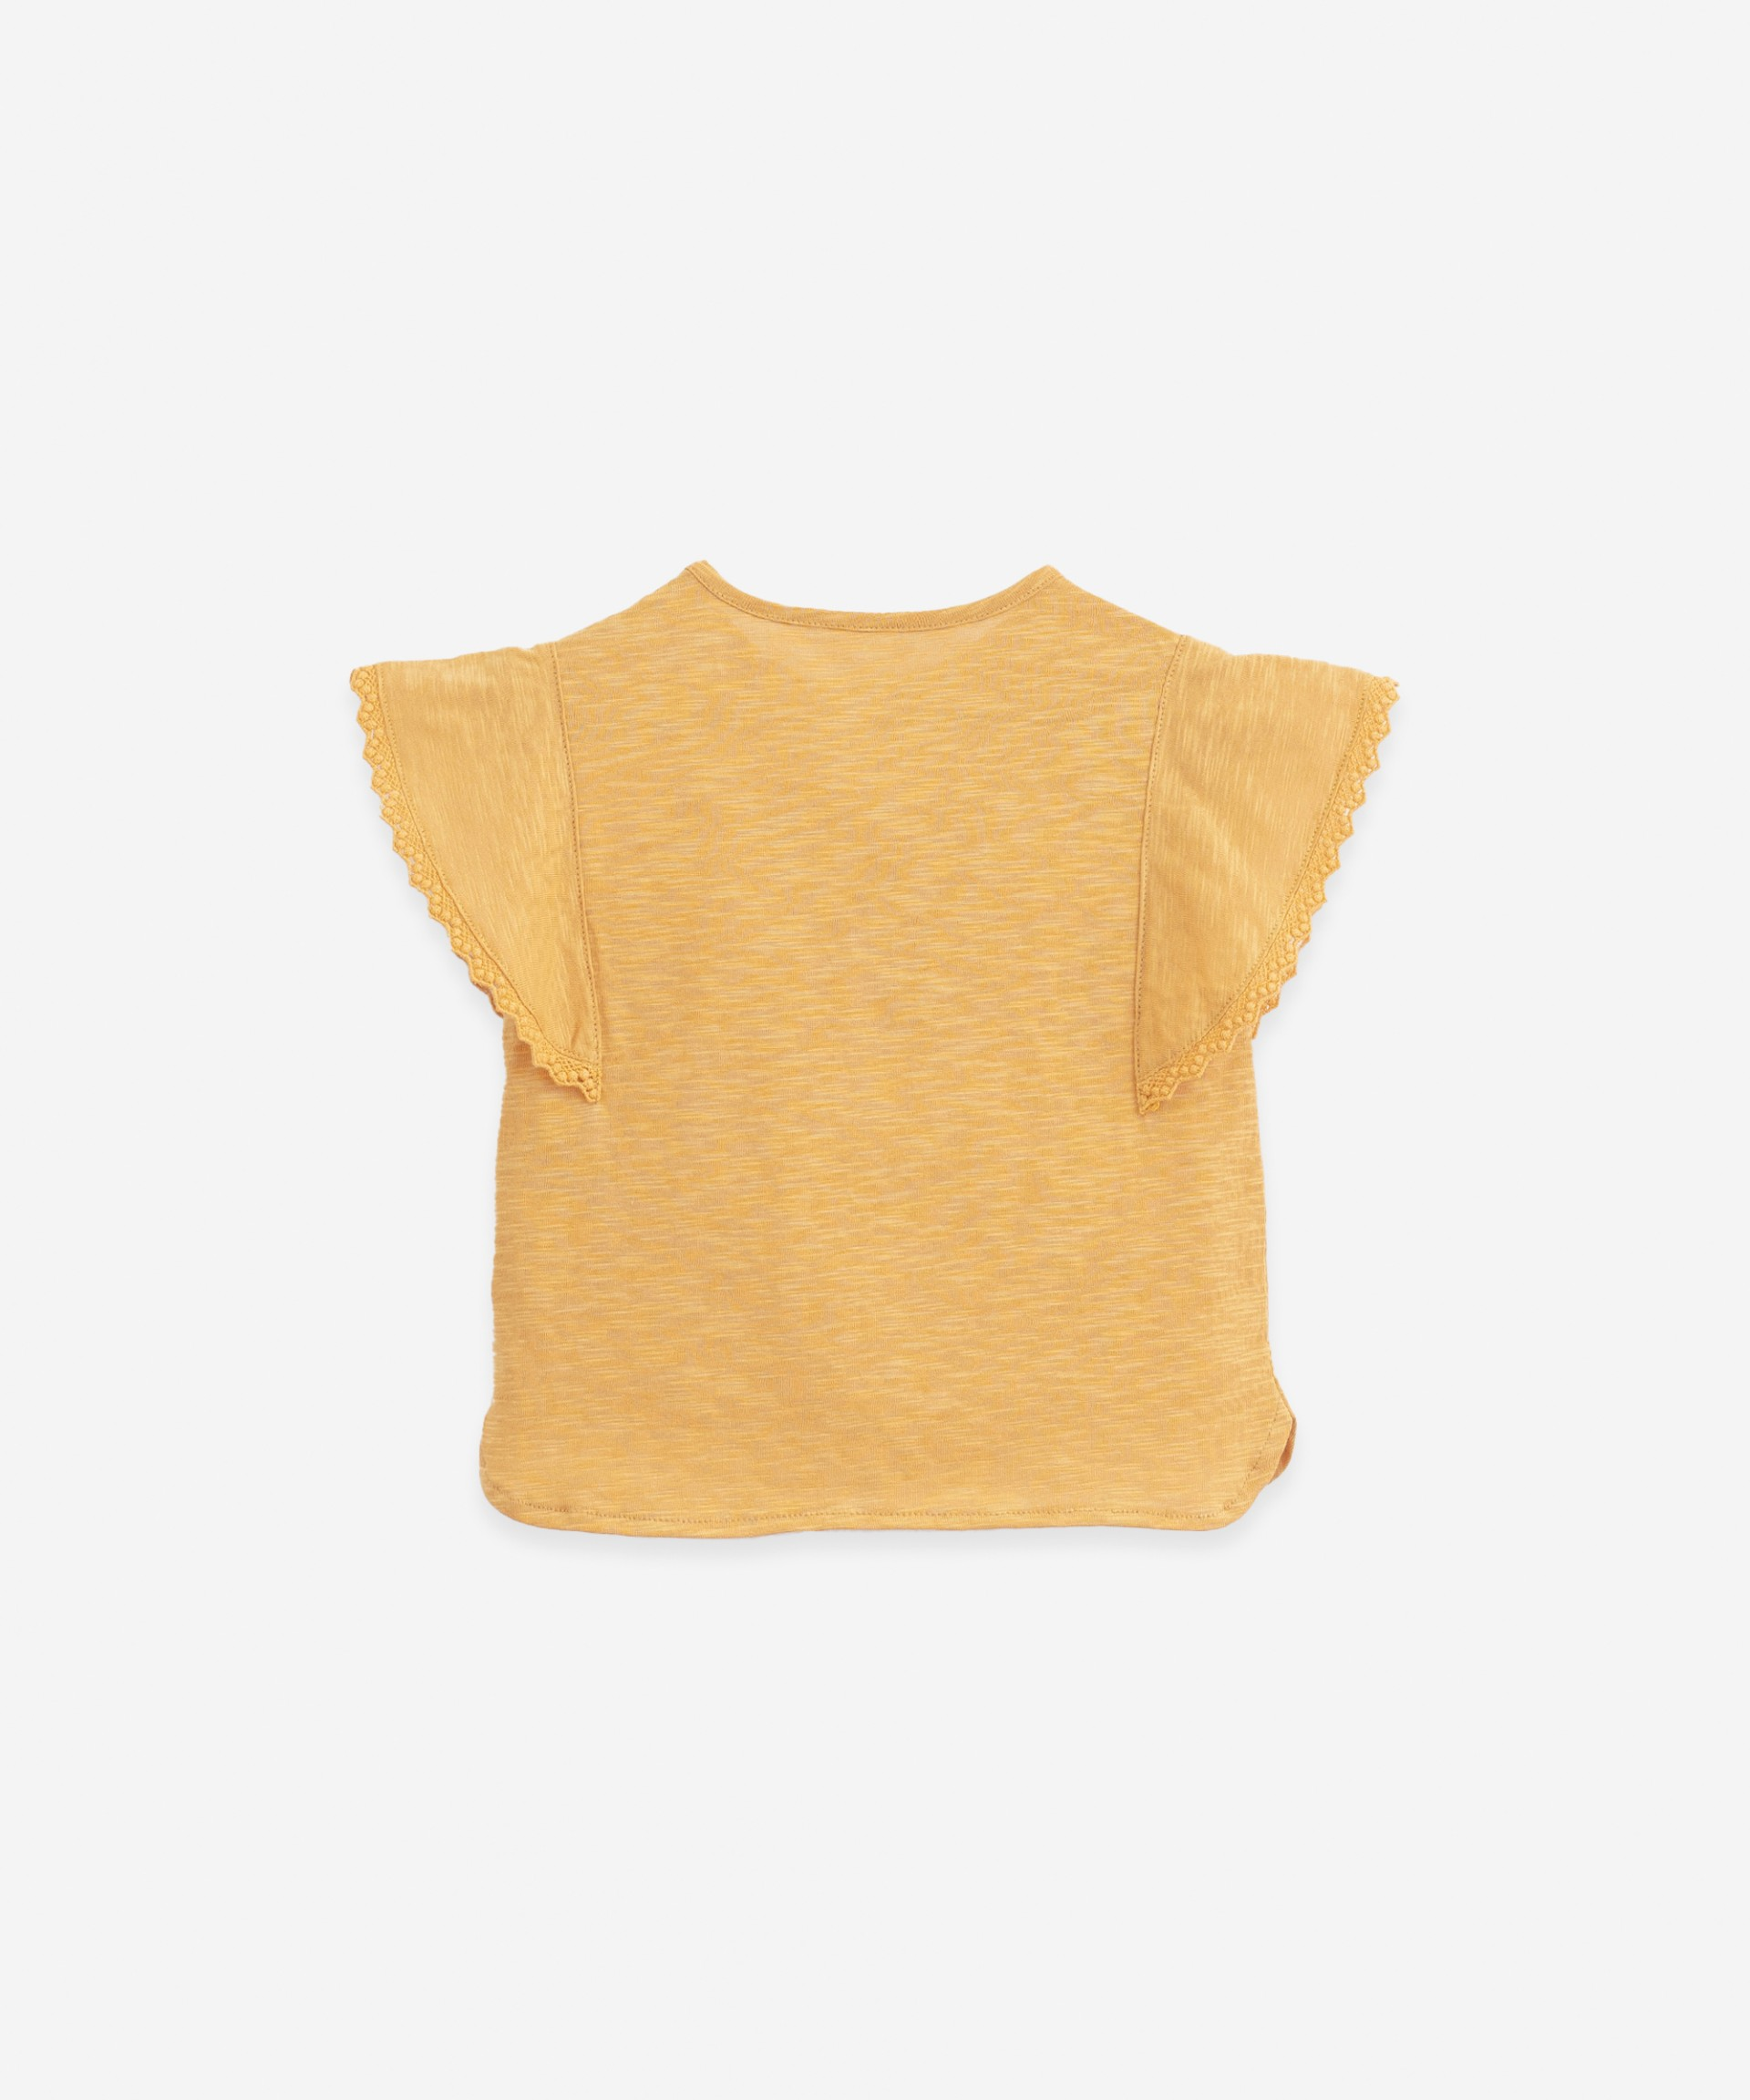 Organic cotton T-shirt | Botany